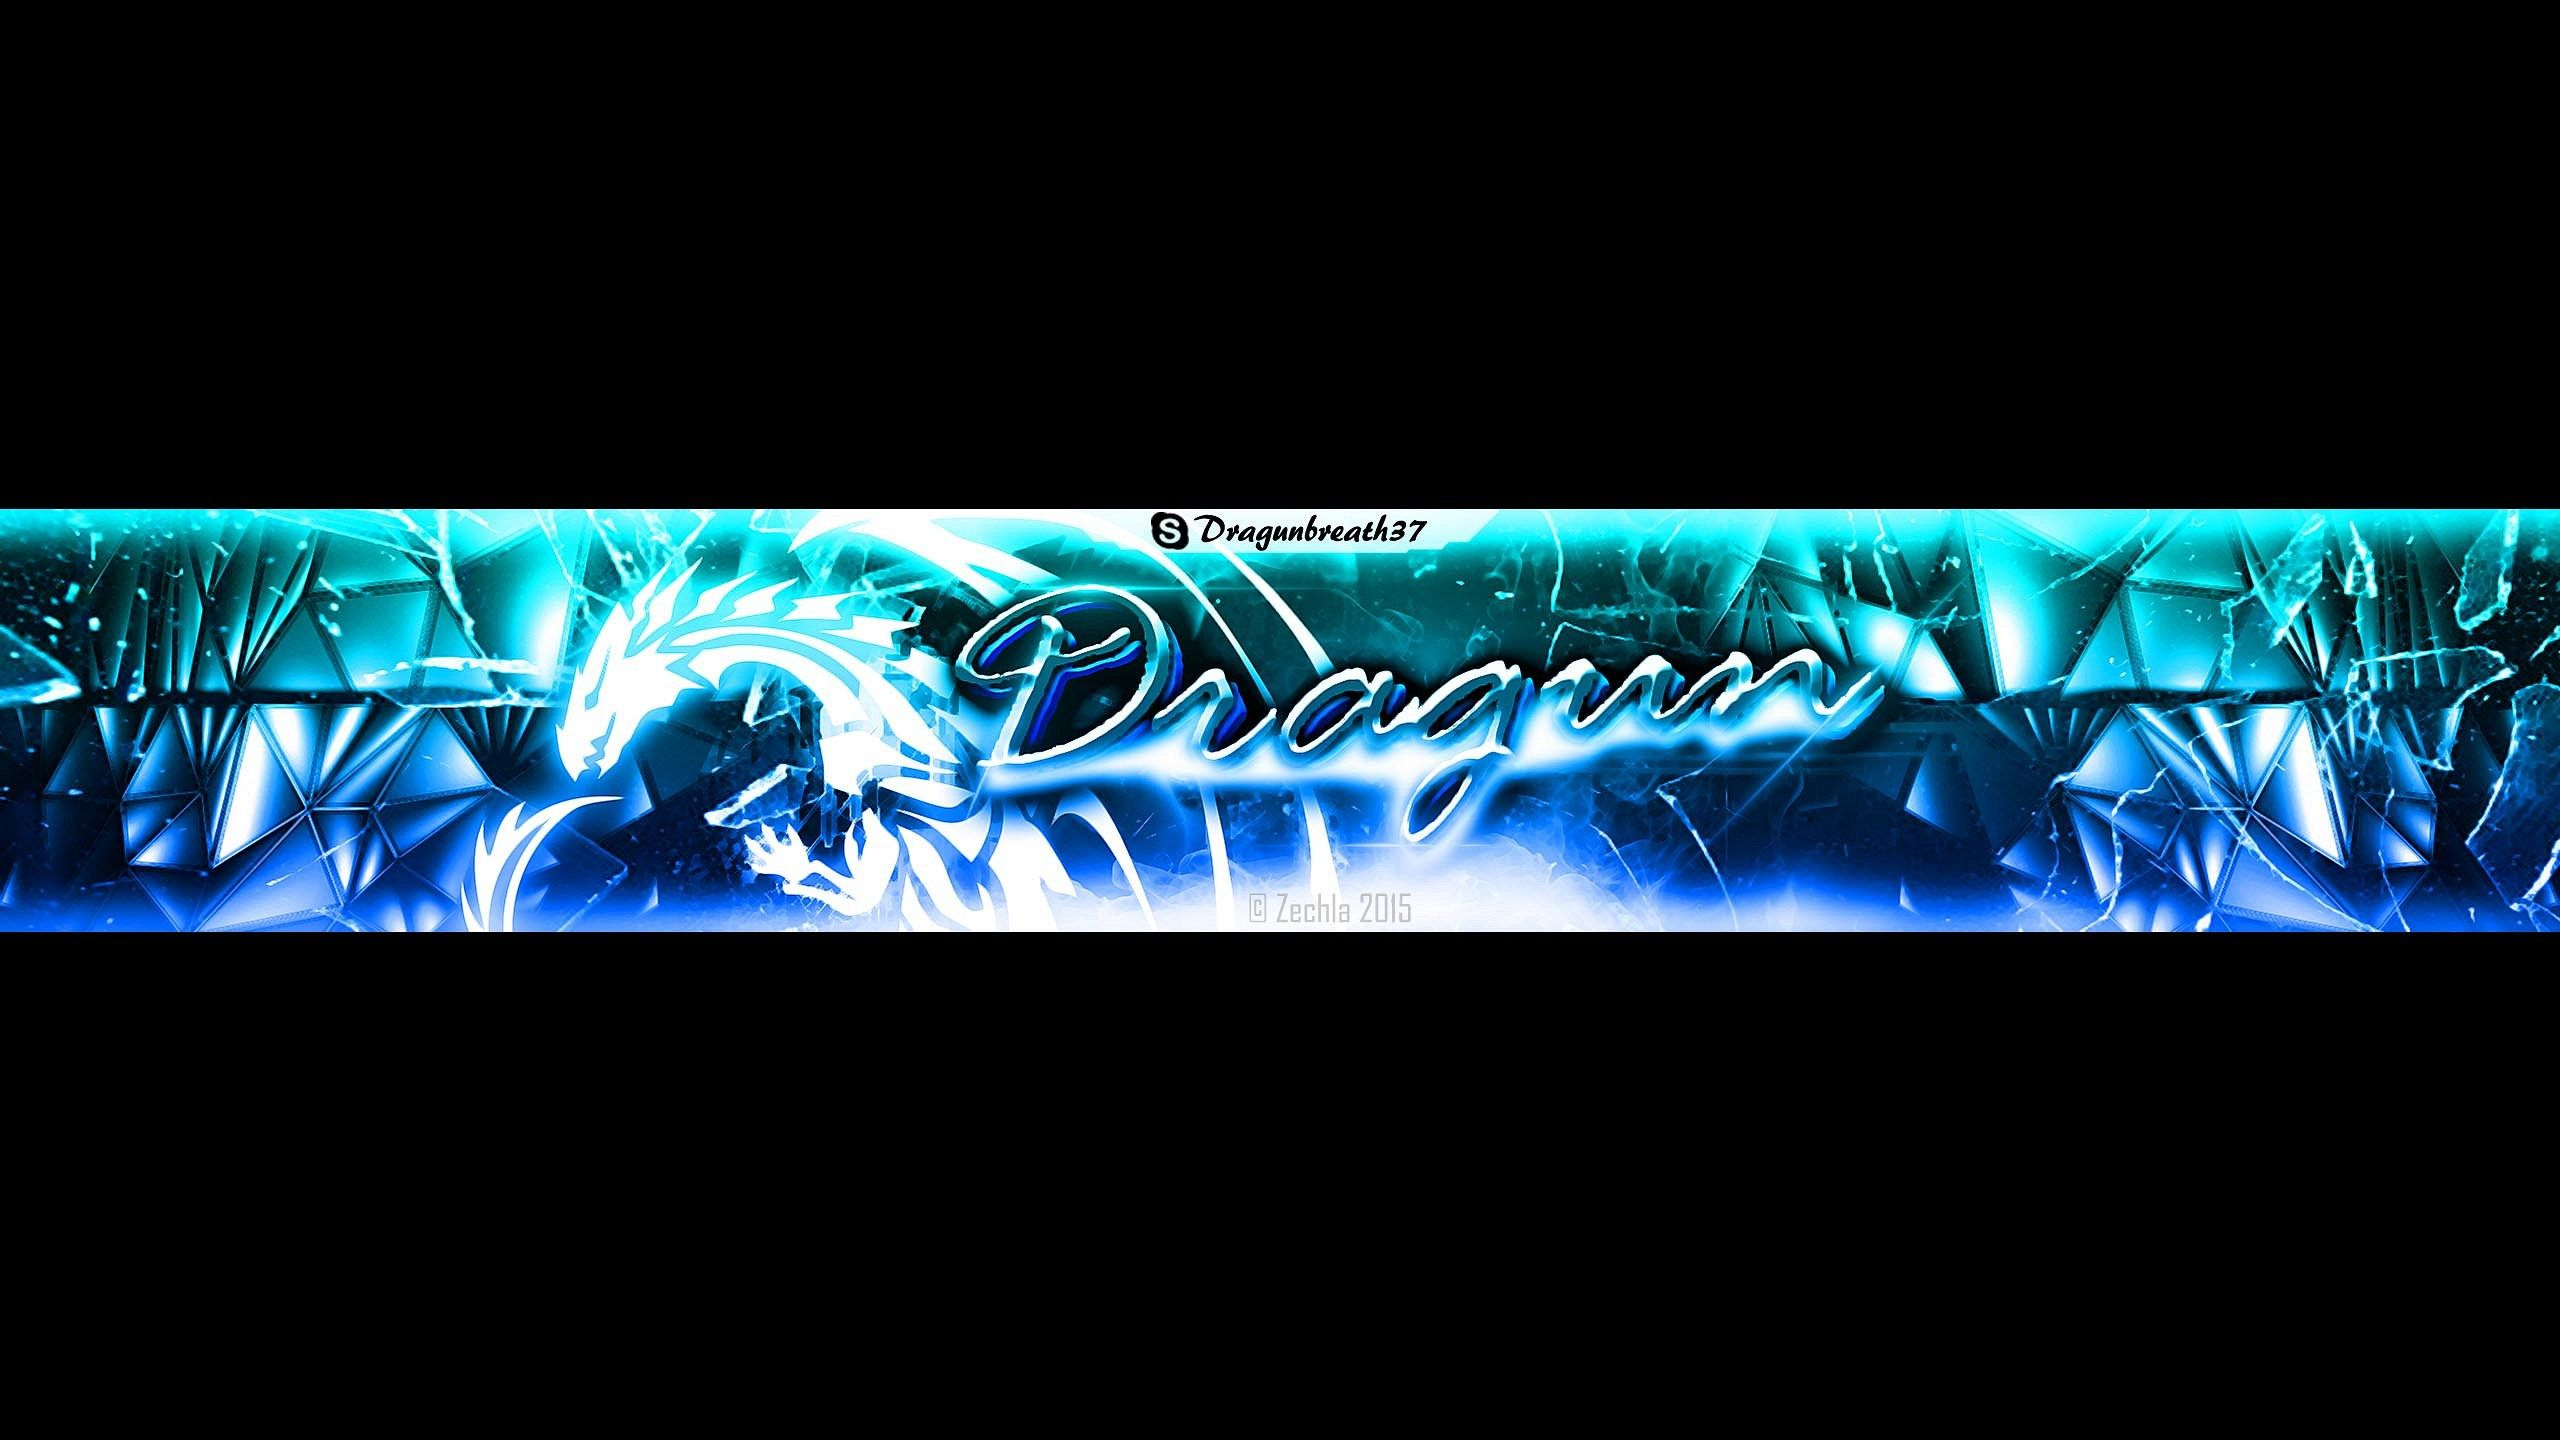 youtube banner maker for gamers. Gaming Youtube Banner Wallpapers Wallpaper Cave